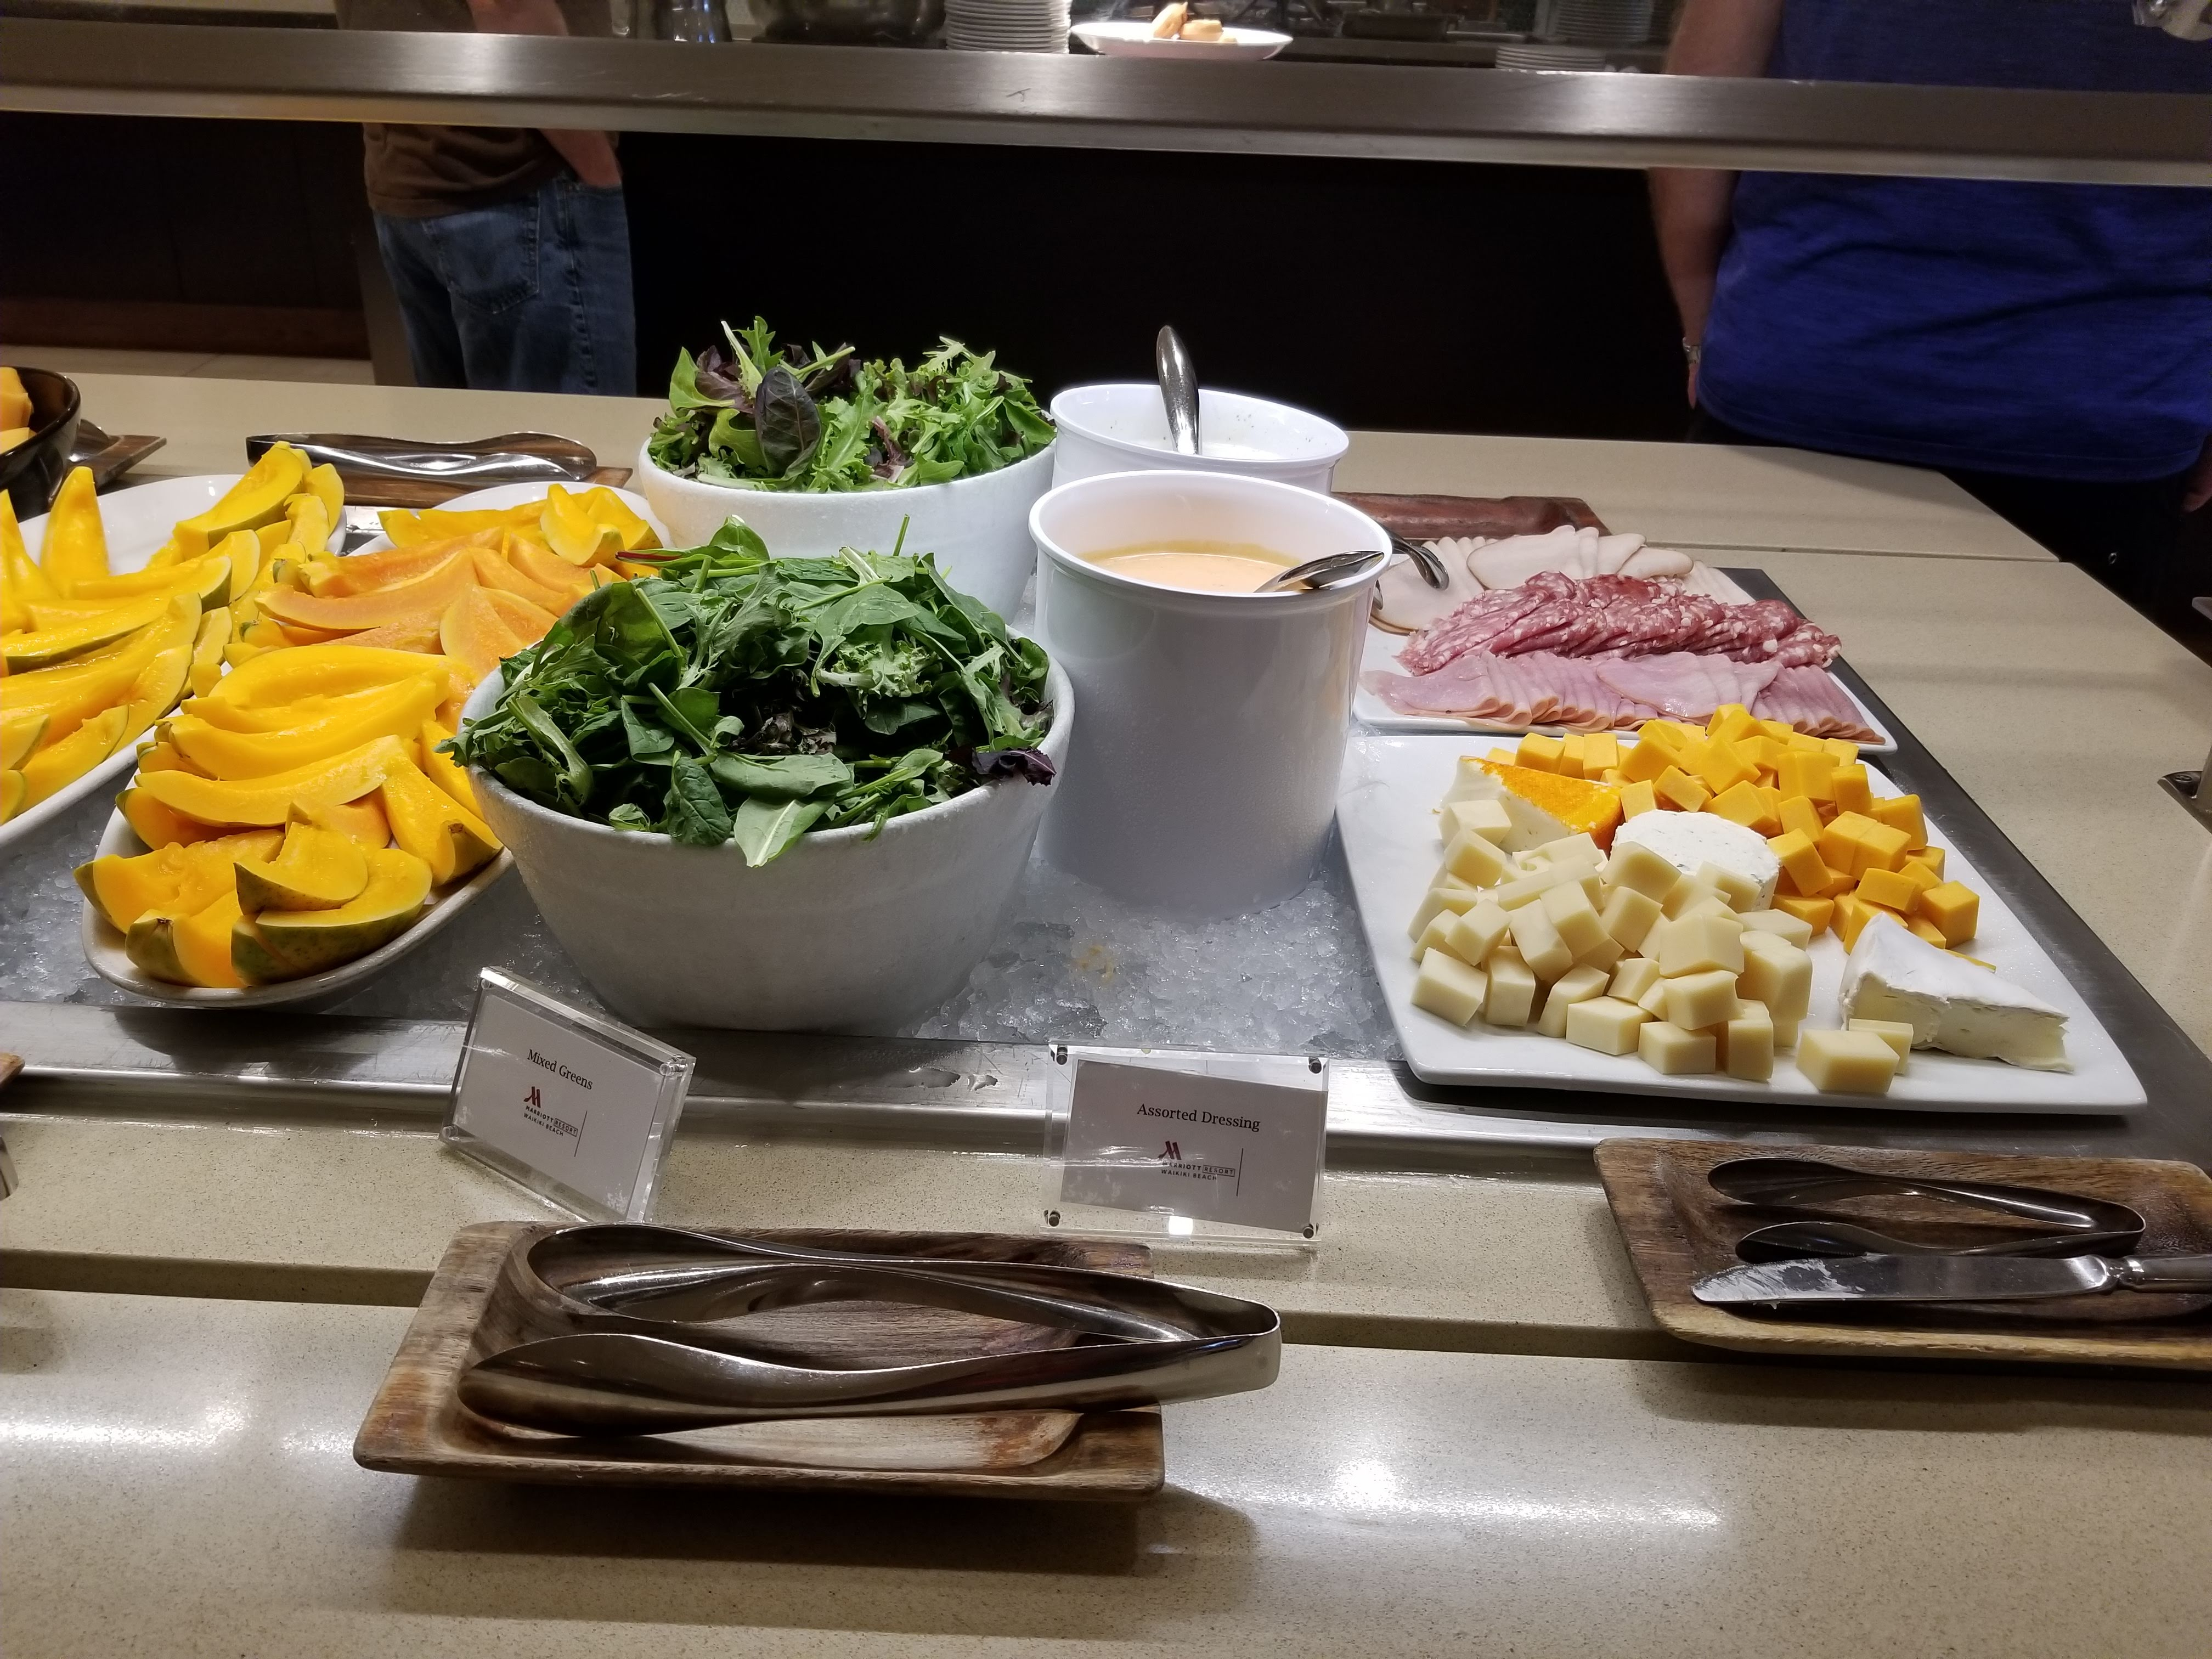 Deli meats, cheese and salad part of the breakfast buffet at the Waikiki Marriott Resort & Spa